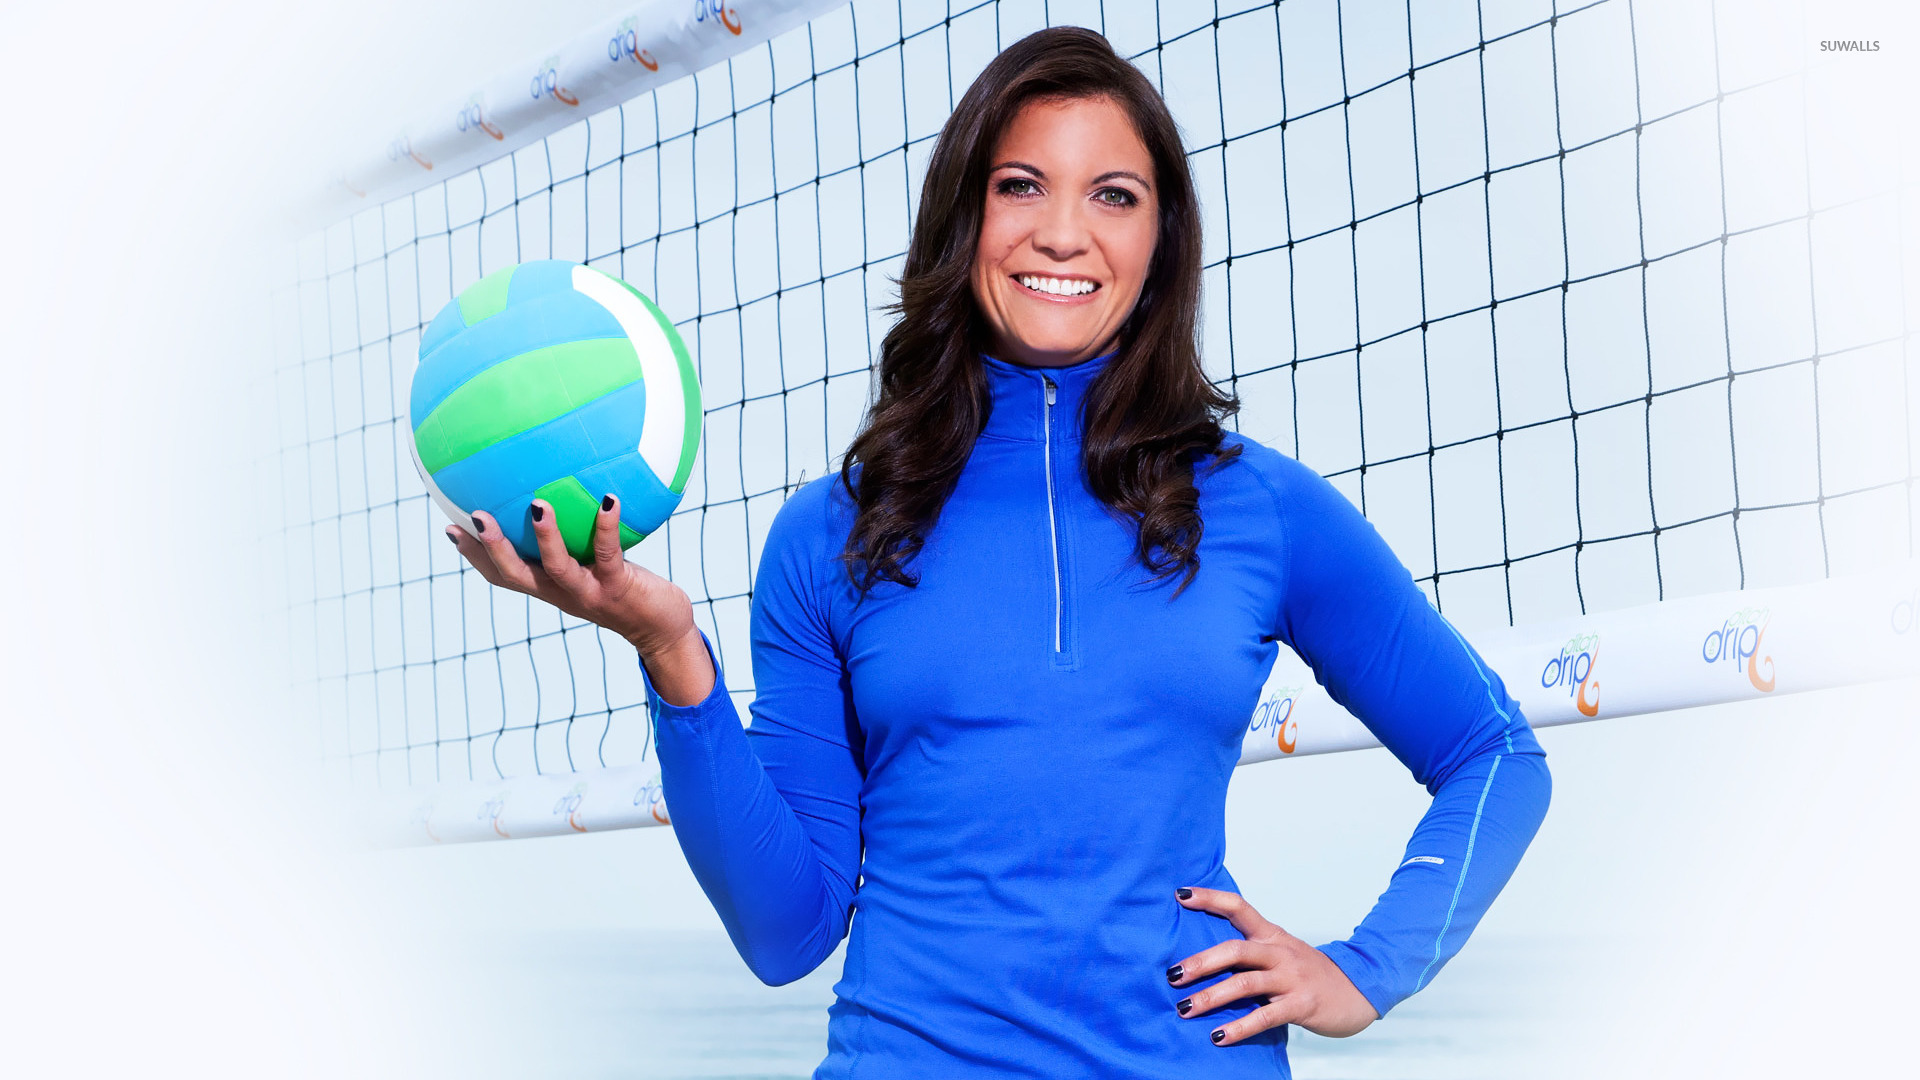 Volleyball Quotes Wallpapers Misty May Treanor 3 Wallpaper Sport Wallpapers 20669